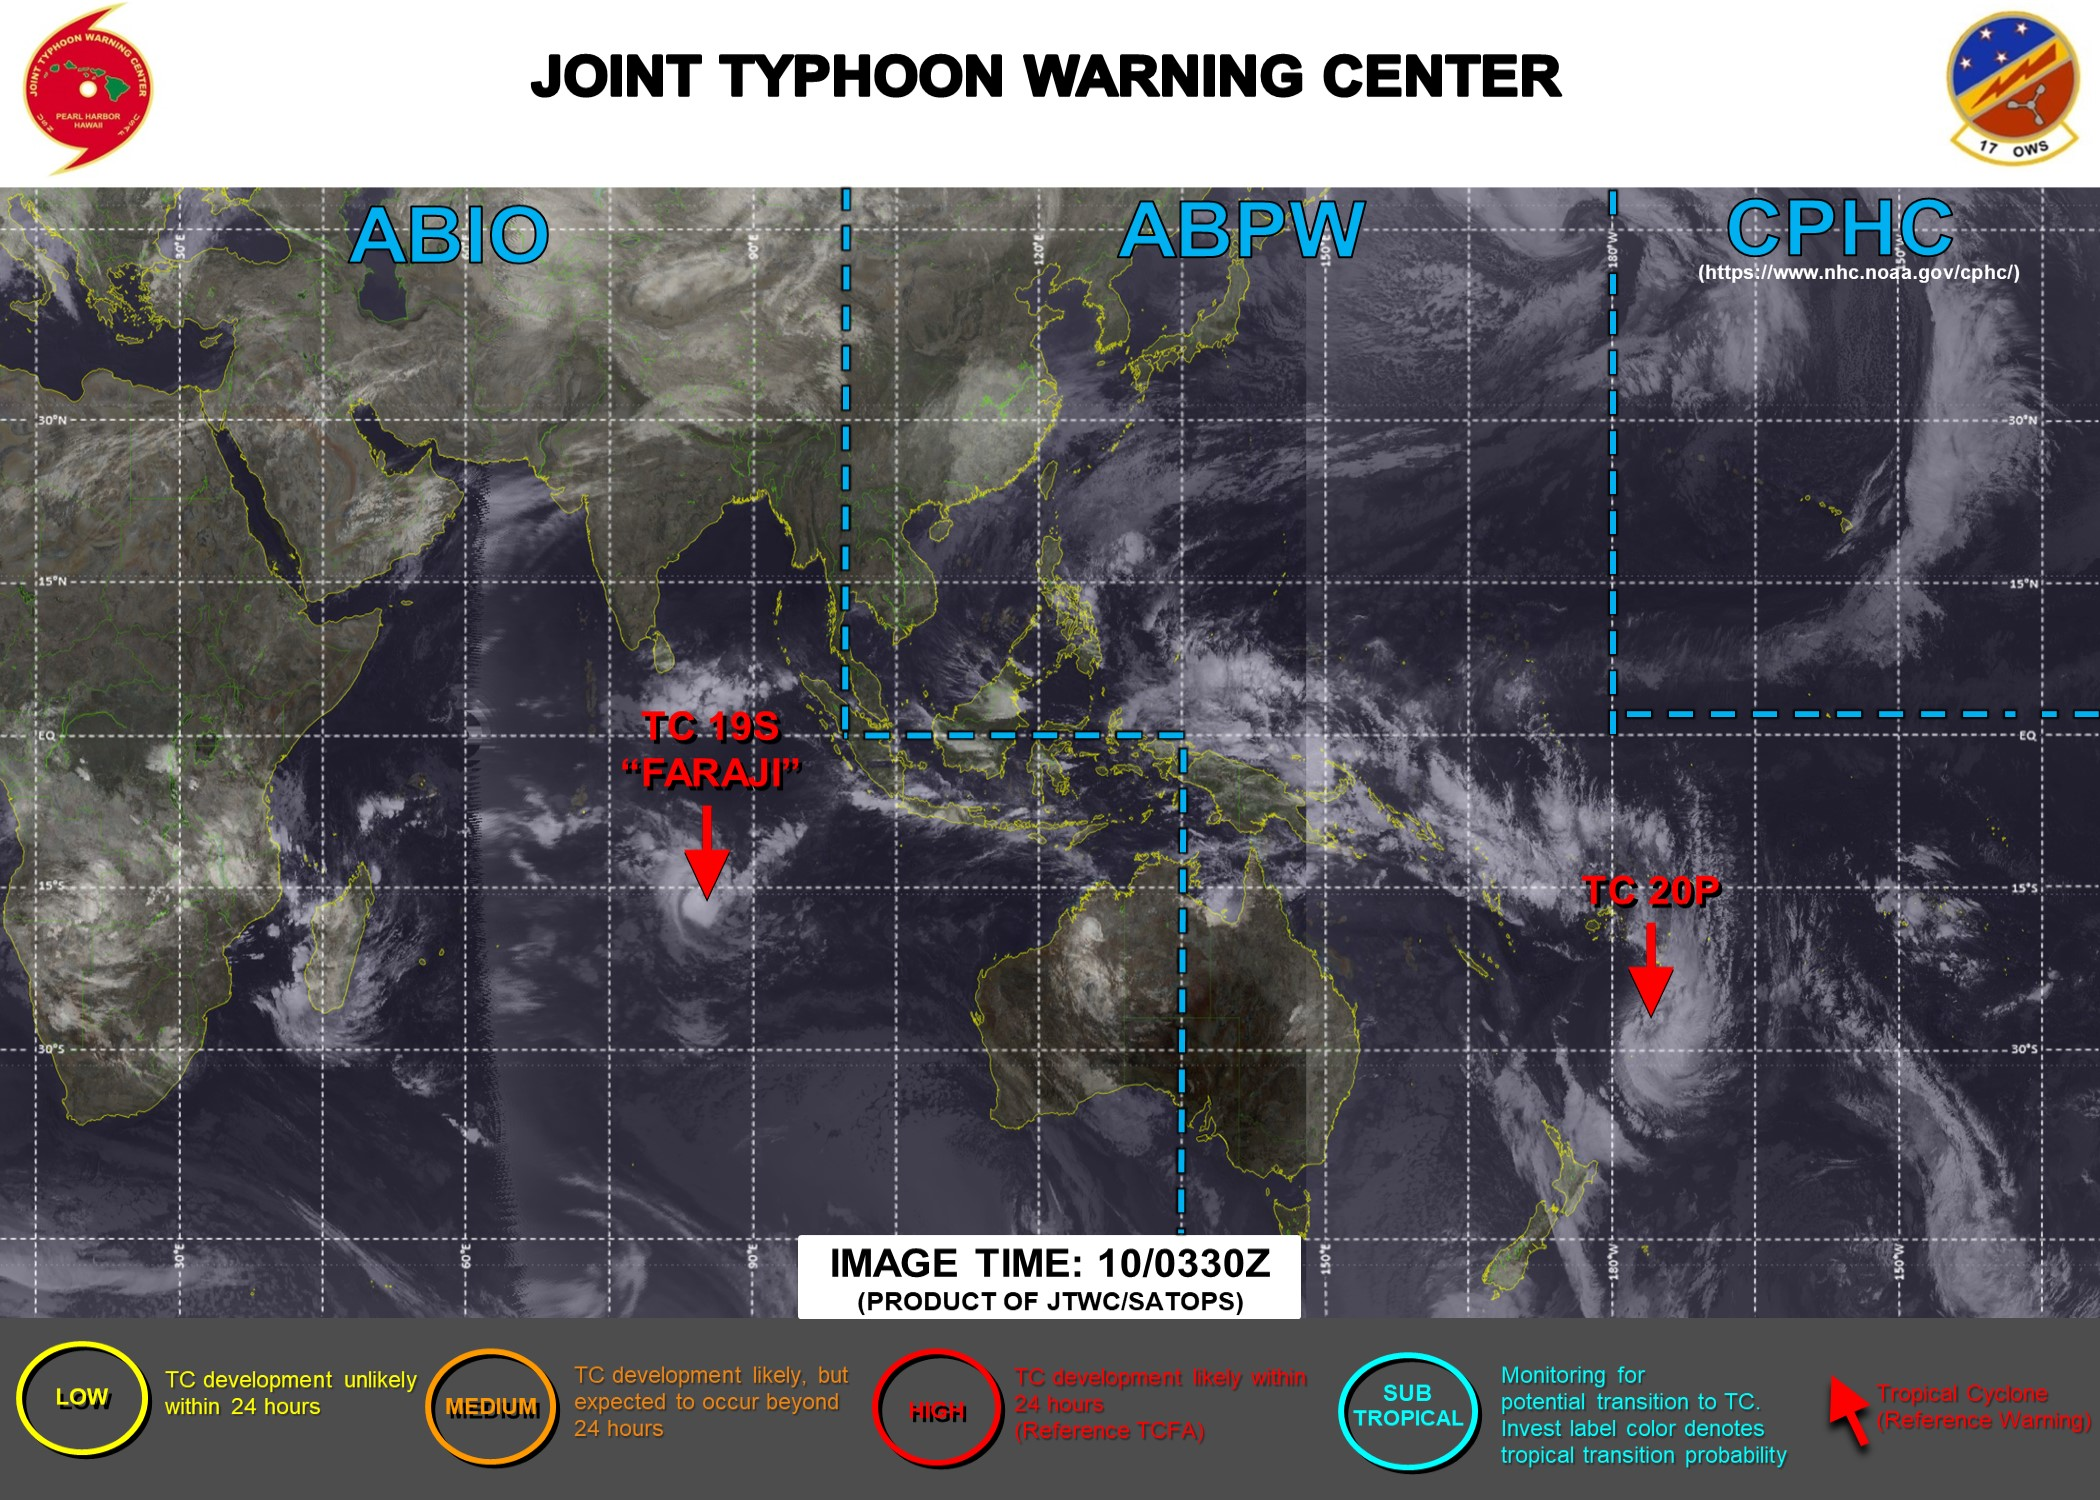 10/0330UTC. JTWC IS ISSUING 12HOURLY WARNINGS ON 19S(FARAJI). WARNING 1 HAS BEEN ISSUED FOR 20P FOLLOWED BY 6HOURLY WARNINGS. 3 HOURLY SATELLITE BULLETINS ARE PROVIDED FOR BOTH 19S AND 20P.